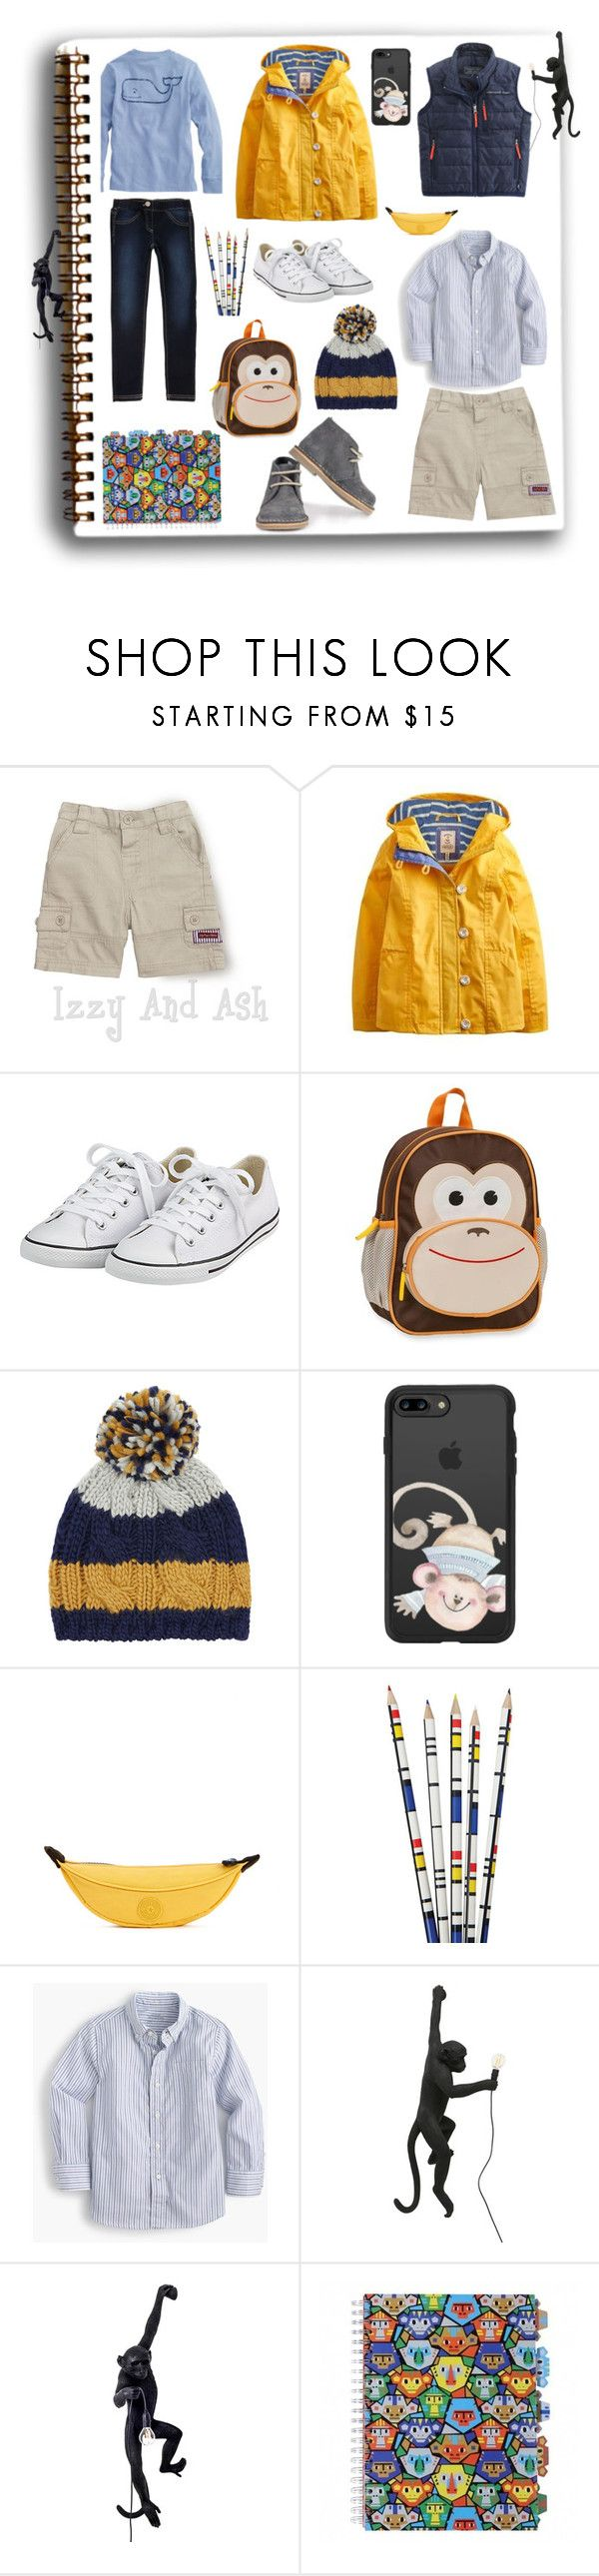 """""""Time to stop monkeying around"""" by onenakedewe ❤ liked on Polyvore featuring JoJo Maman Bébé, Joules, Converse, House of Fraser, Vineyard Vines, Tea Collection, Rockland Luggage, Monsoon, Casetify and Kipling"""